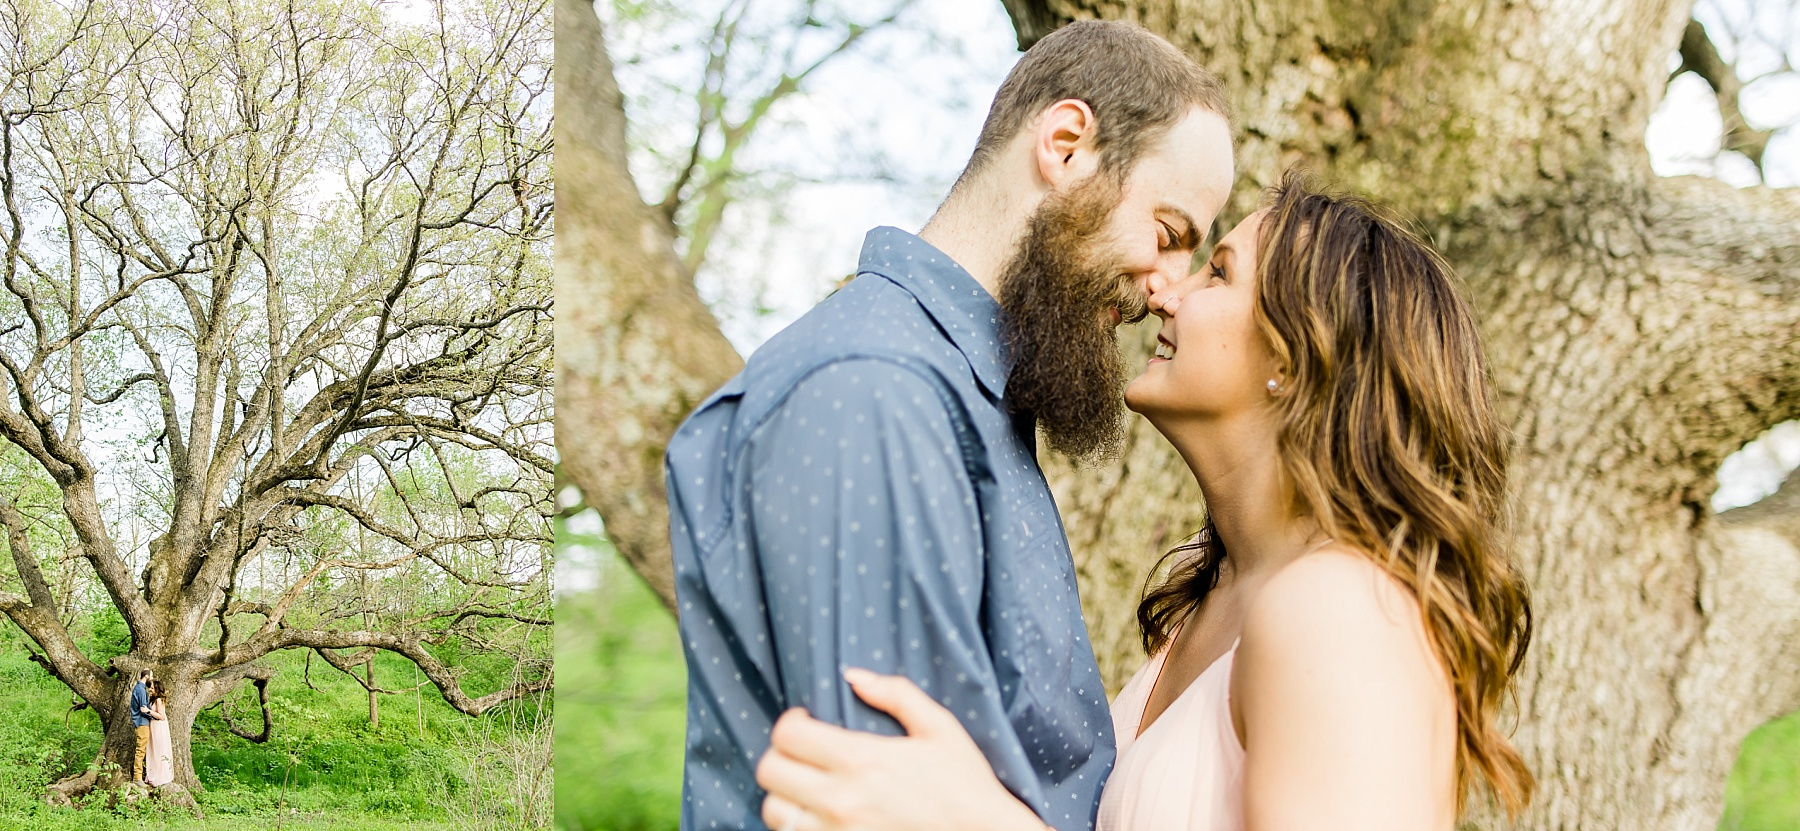 monticello indiana wedding engagement photography simple adventure weird_0026.jpg